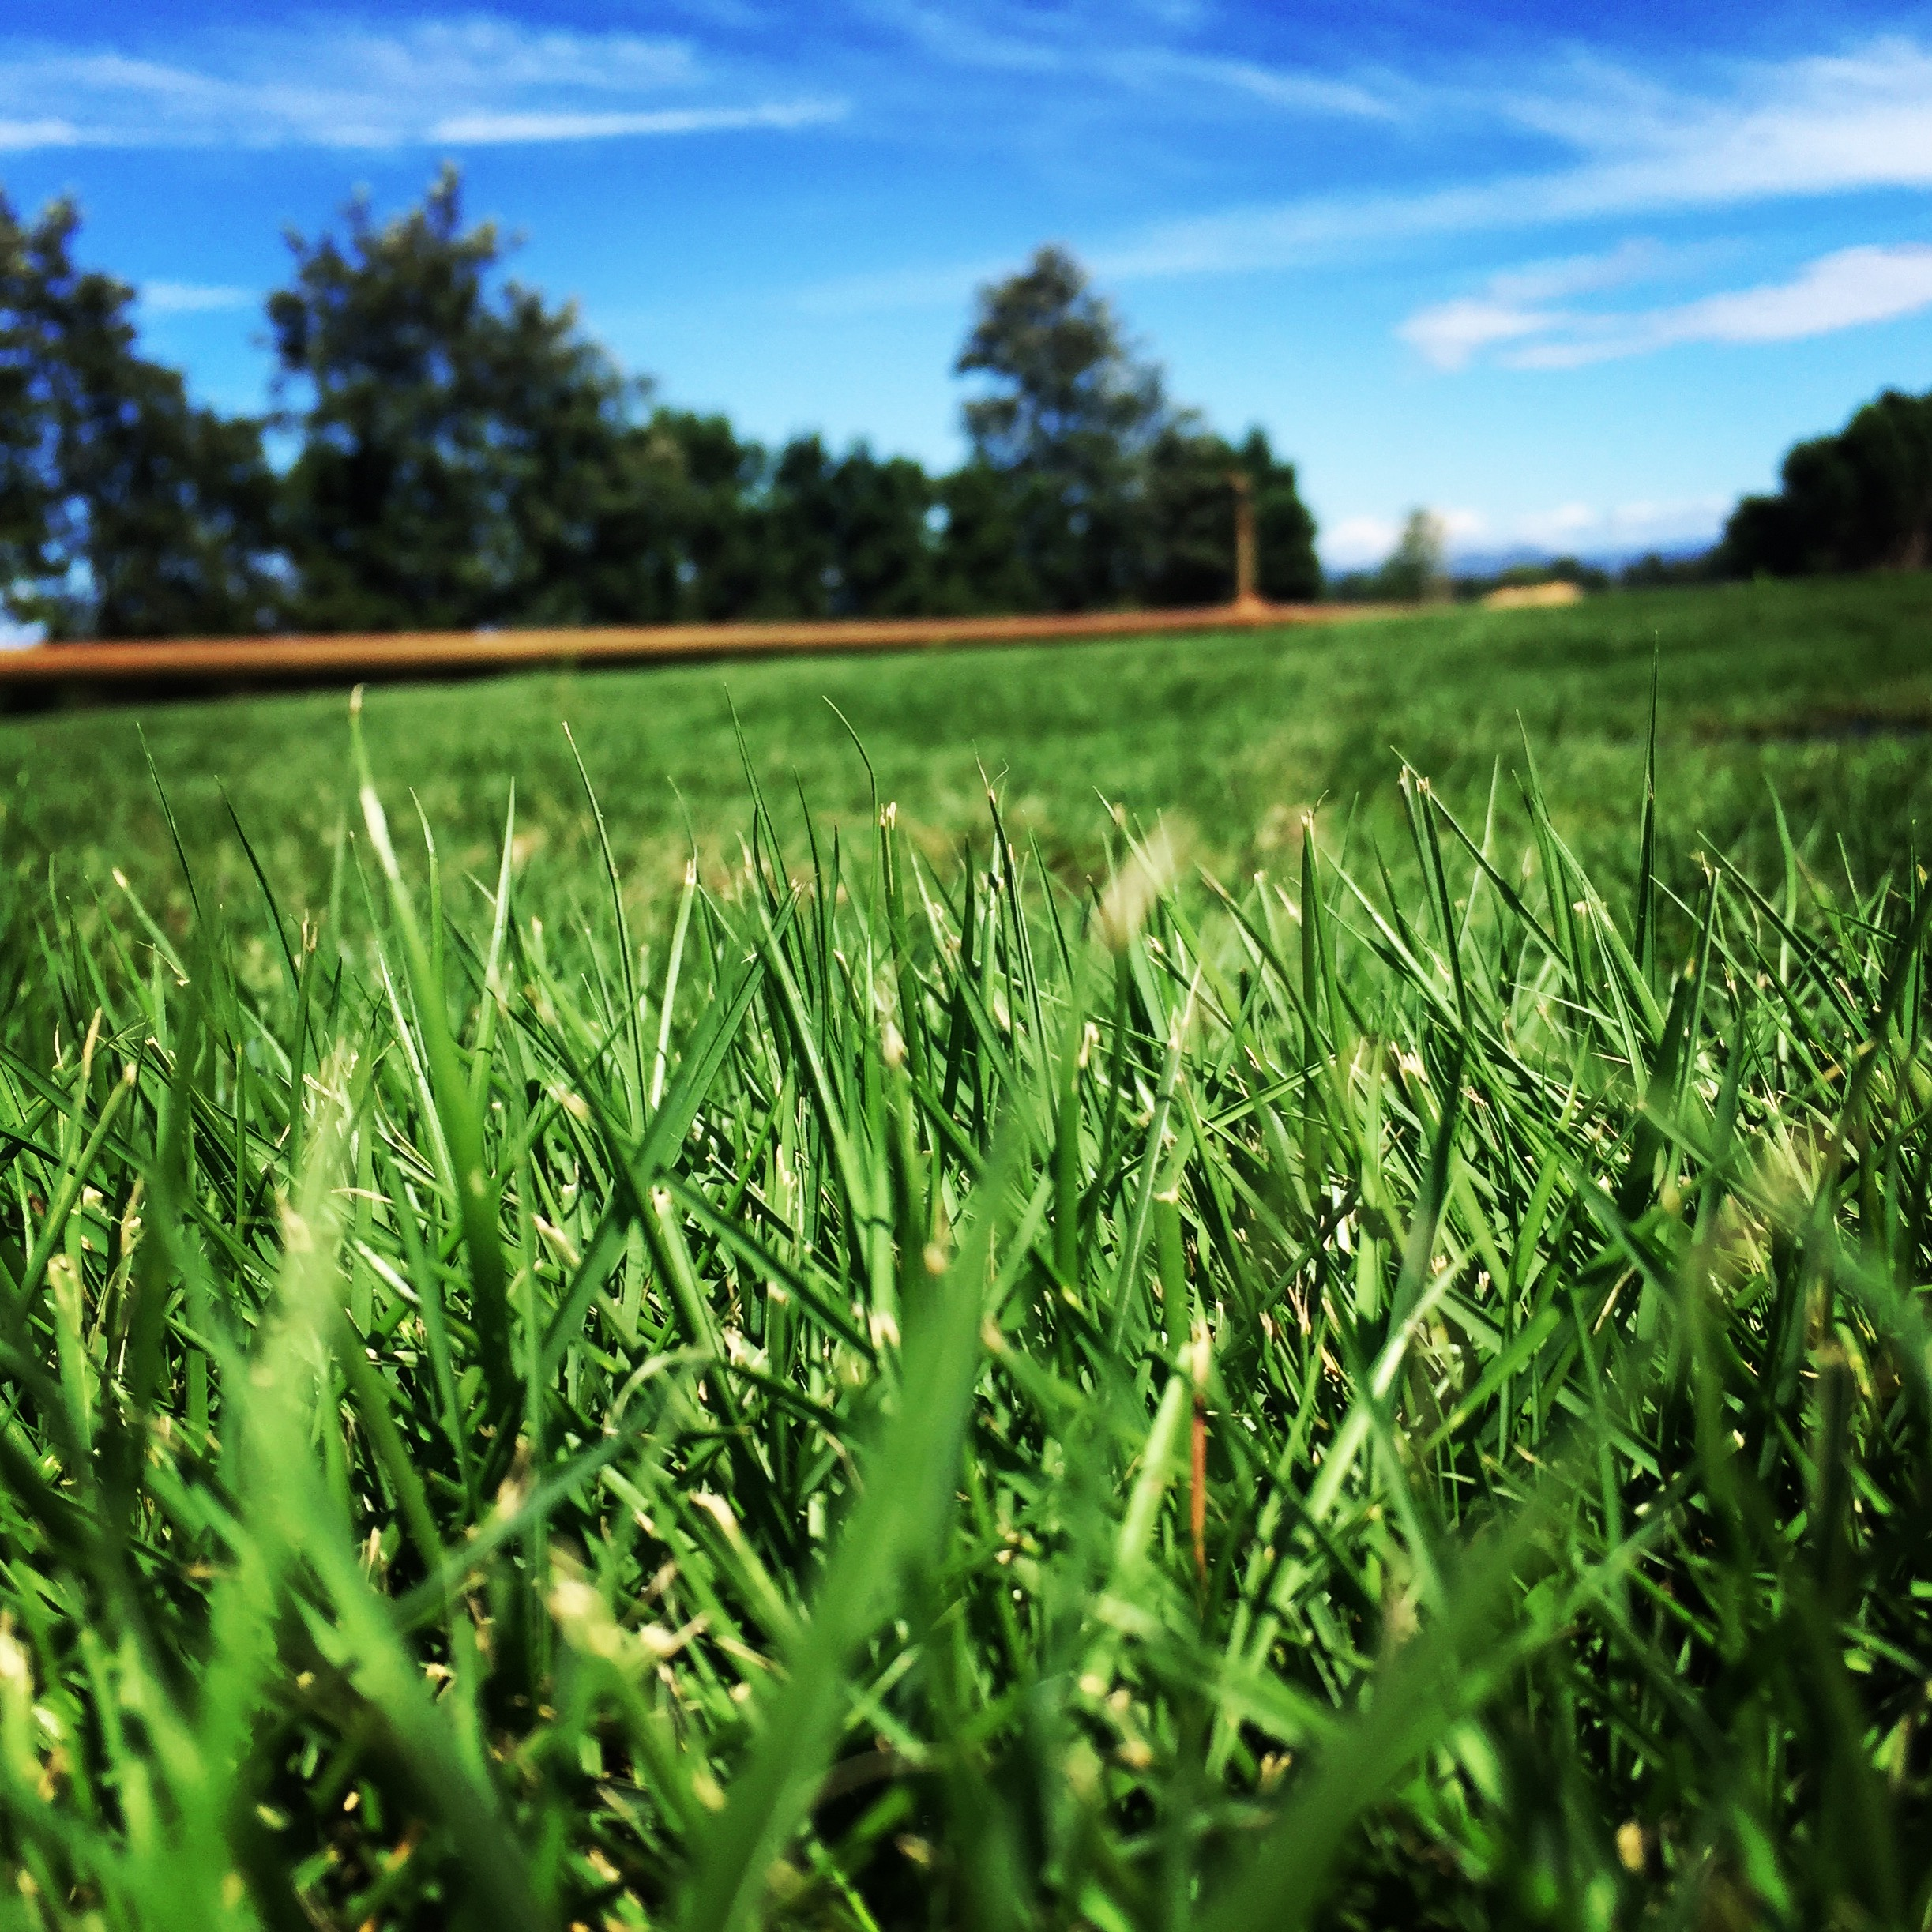 Greenerlawn Is Adding Sand To Lawns A Good Idea Or Not? Lawn Care -